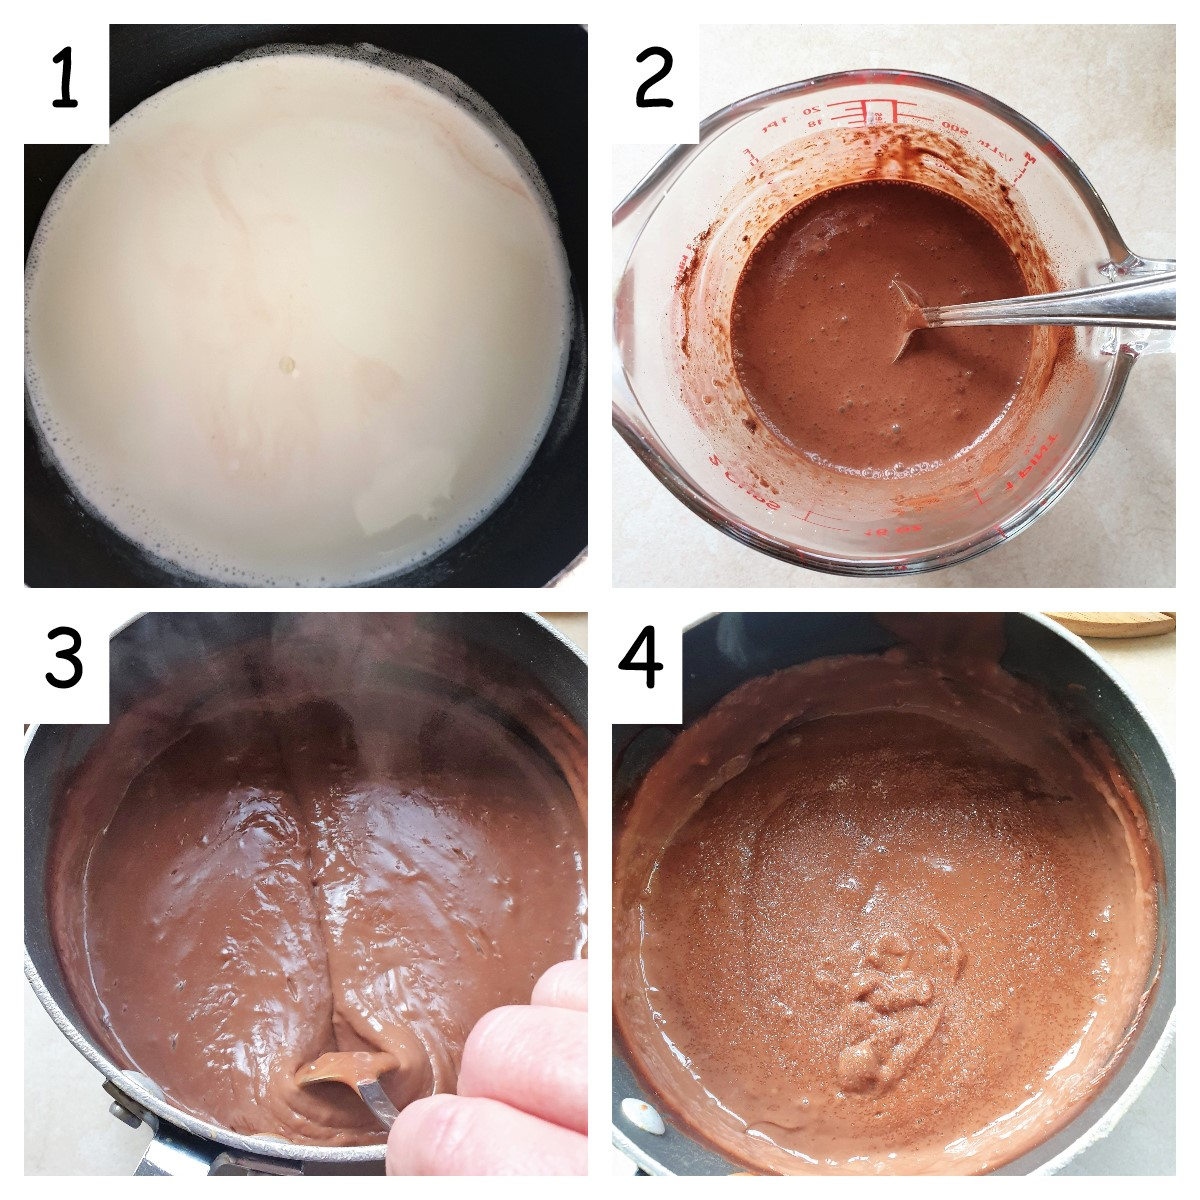 Collage showing steps to make chocolate custard.